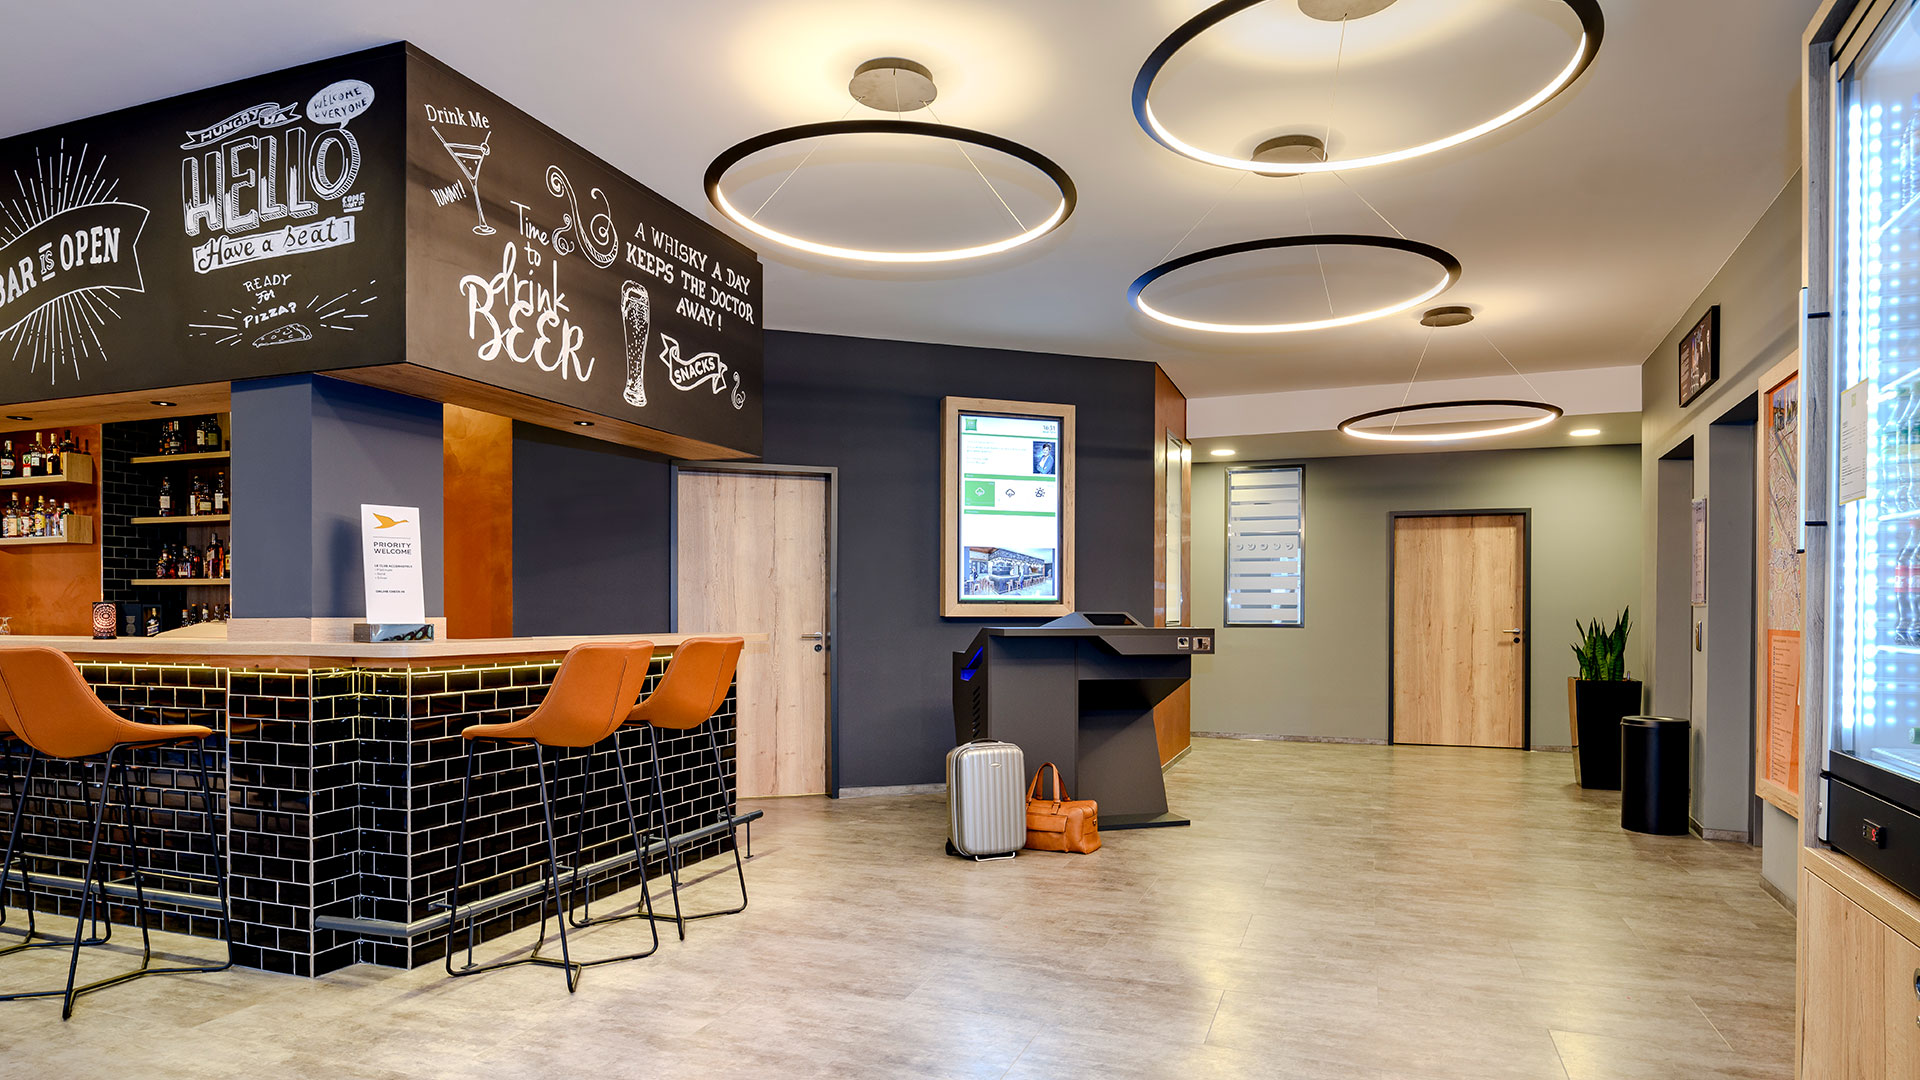 Photo of the reception - 01 - ibis Styles Bamberg